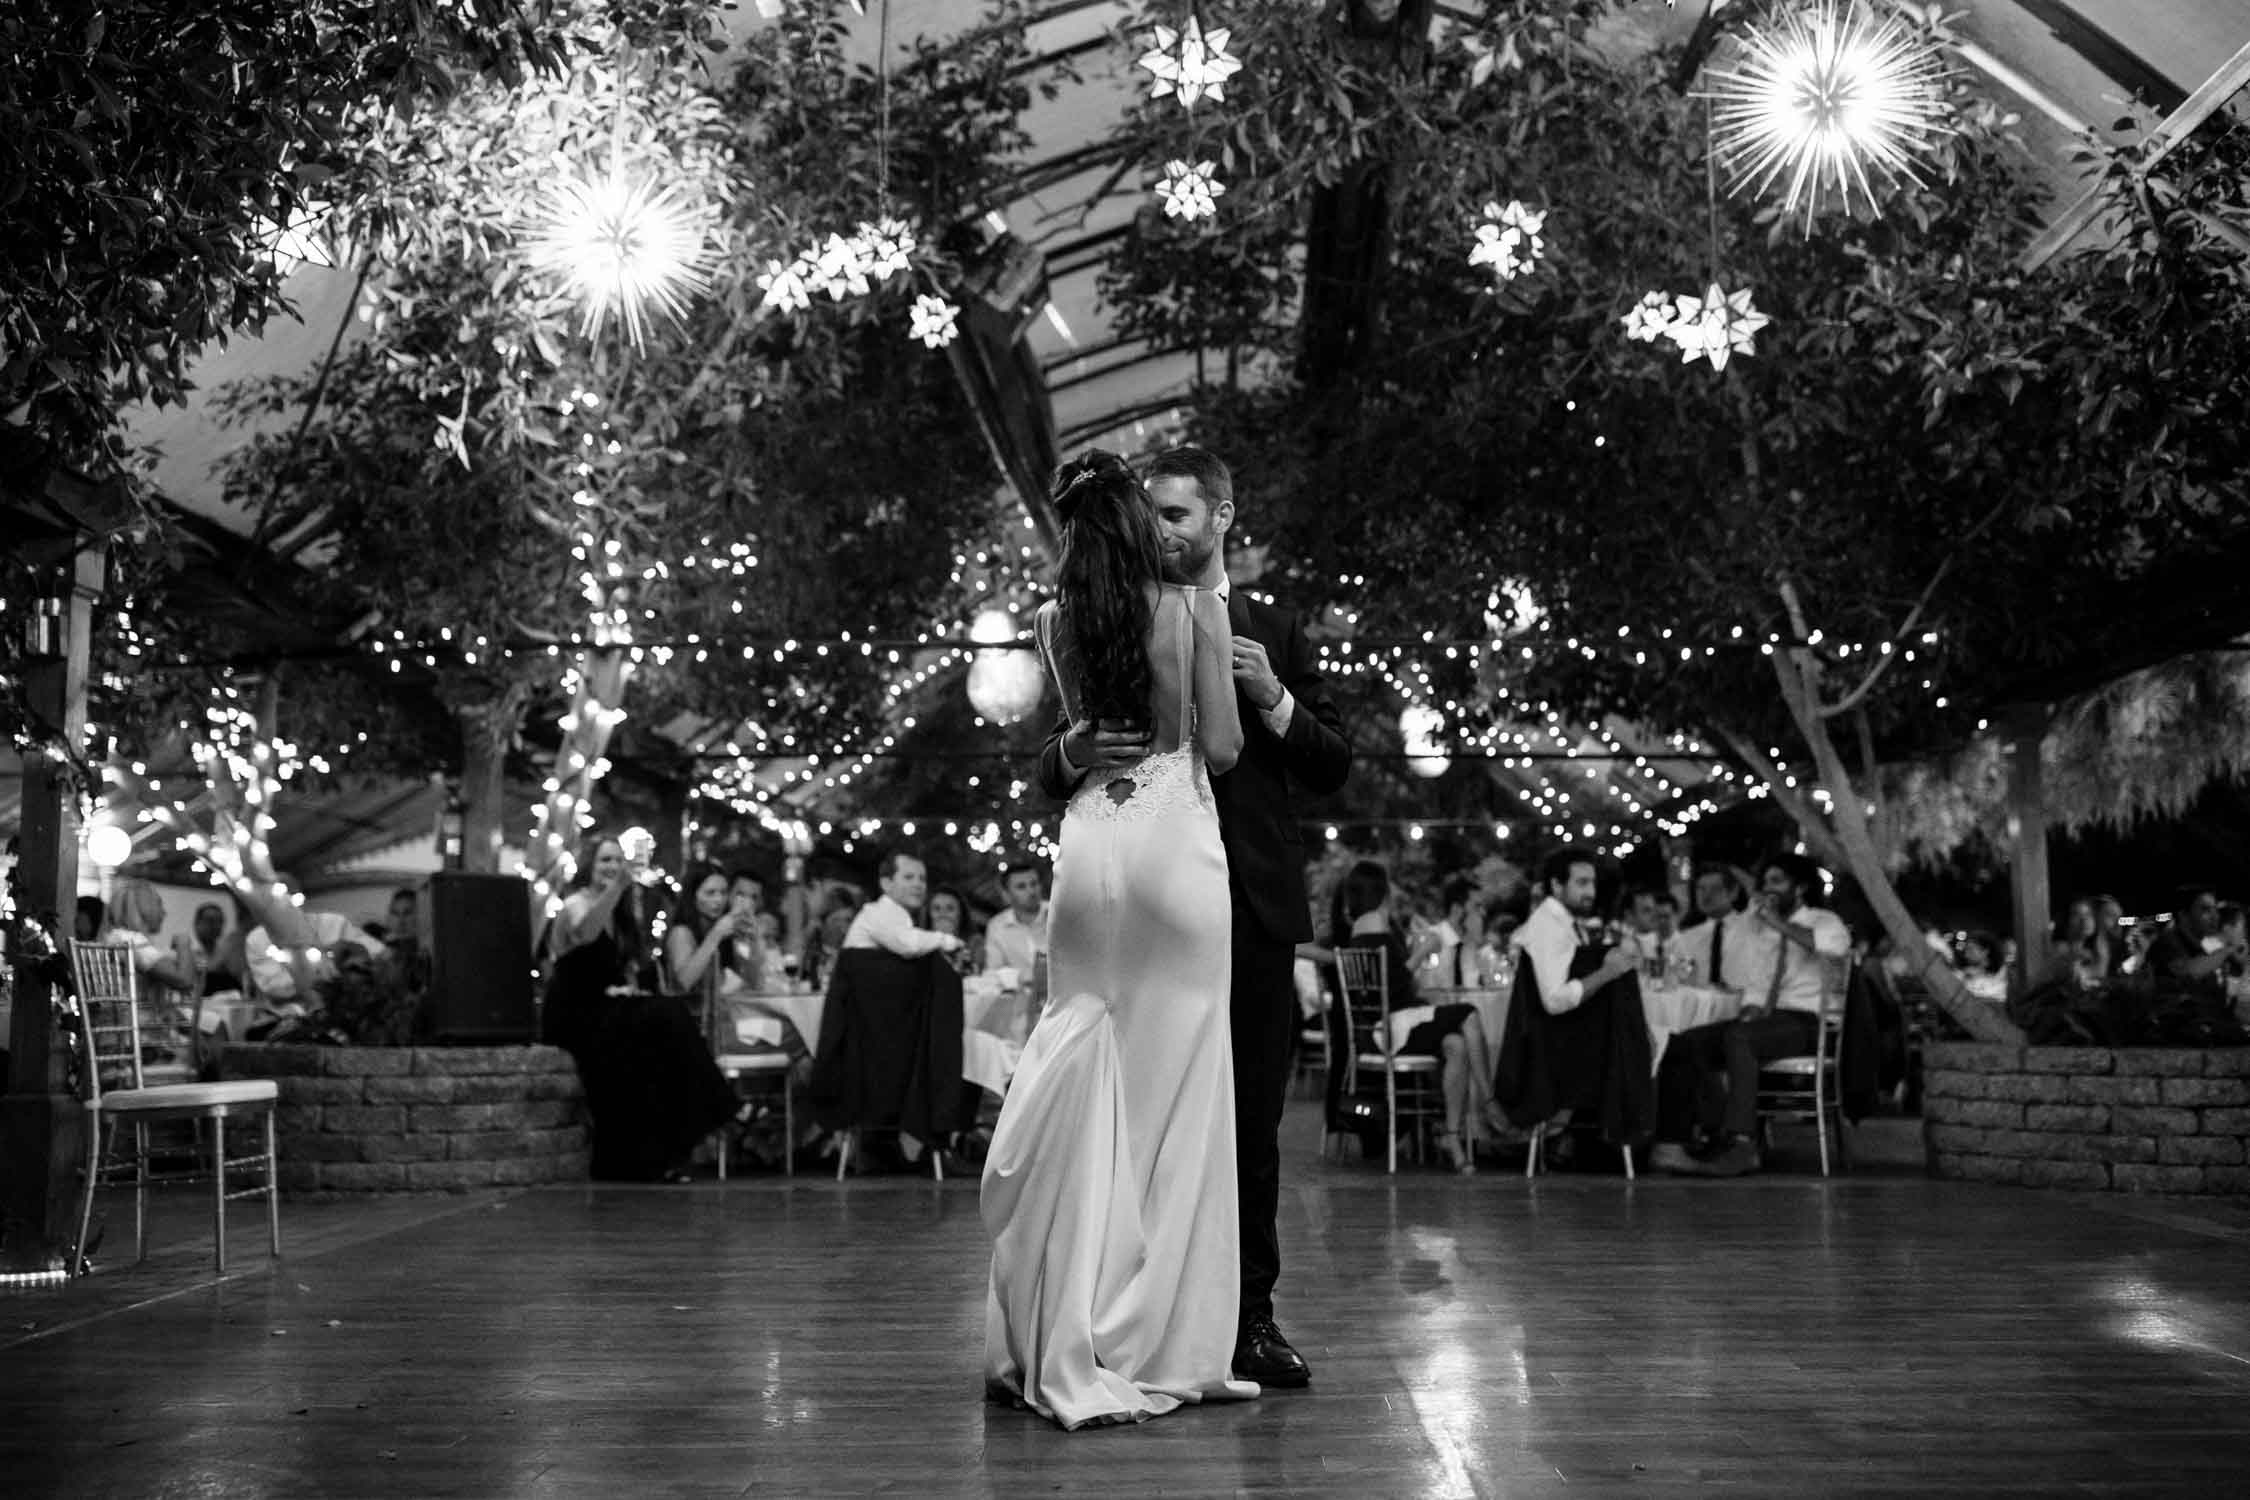 Romantic first dance at Madsen's Greenhouse wedding venue in Newmarket close to Toronto